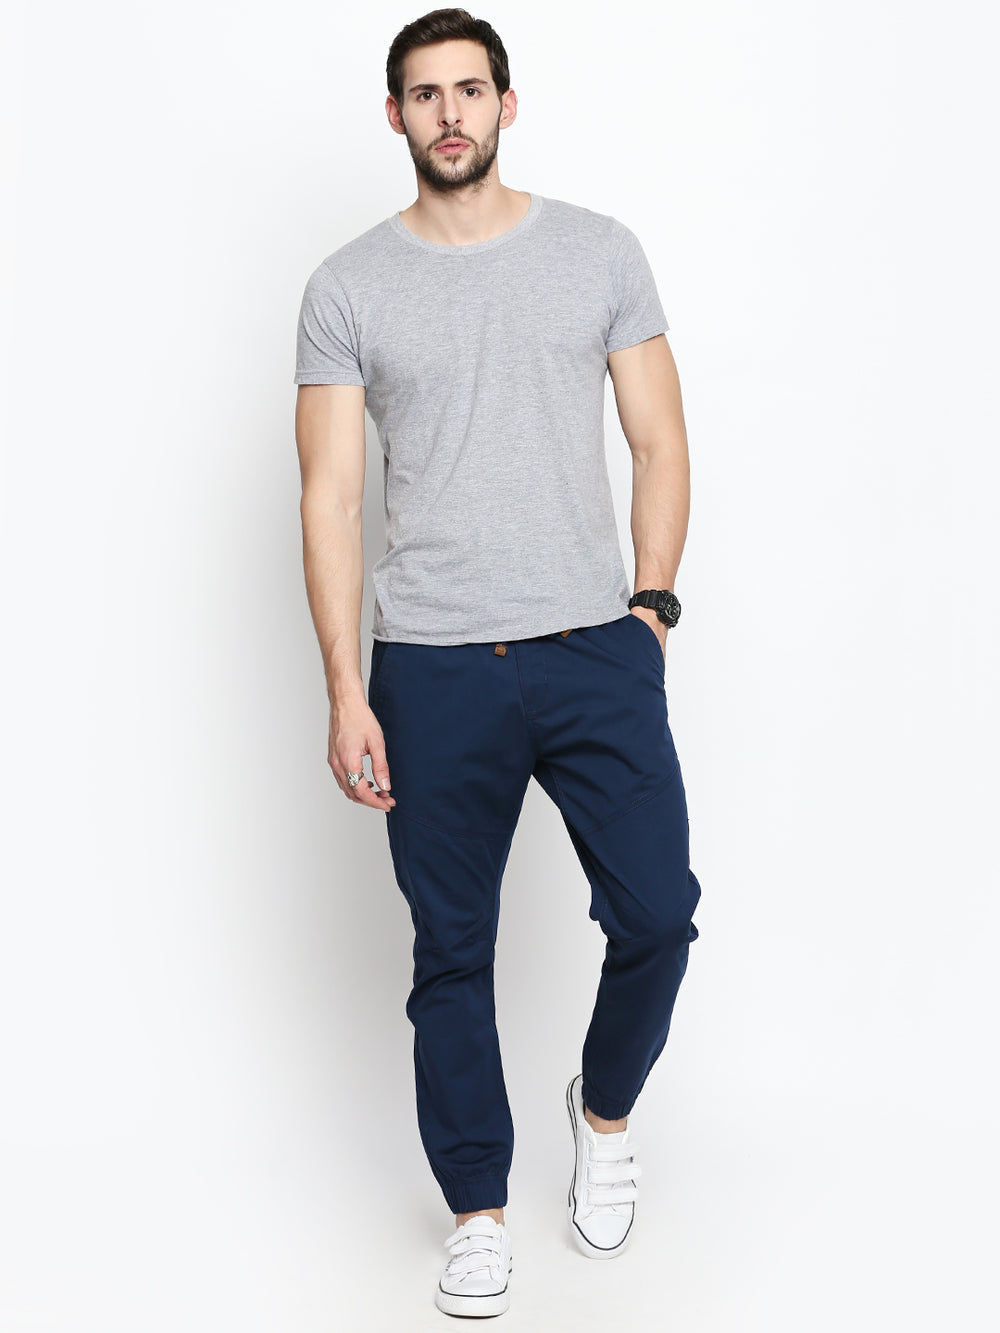 Disrupt Ink Blue Regular Fit Joggers For Men's